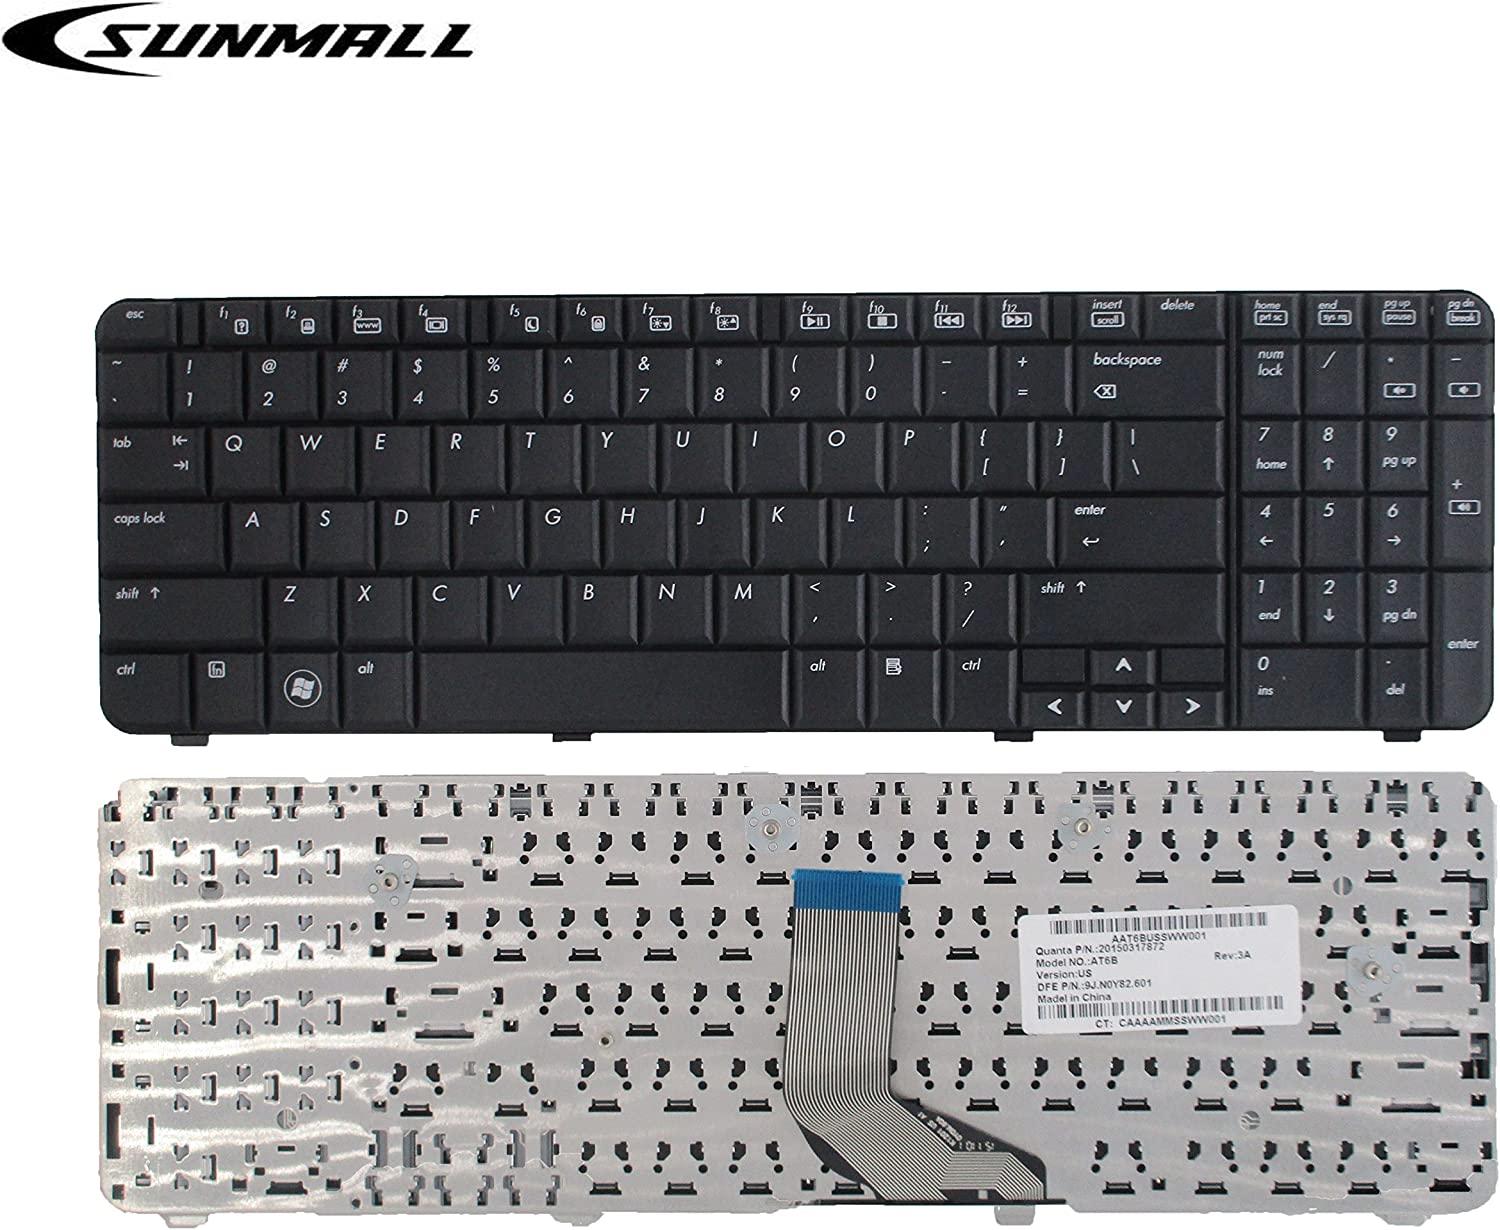 SUNMALL Laptop Keyboard Replacement for HP Compaq Presario CQ61 G61 G61-100 G61-200 G61-300 CQ61-200 CQ61-100 CQ61-300 Series Laptop Black US Layout